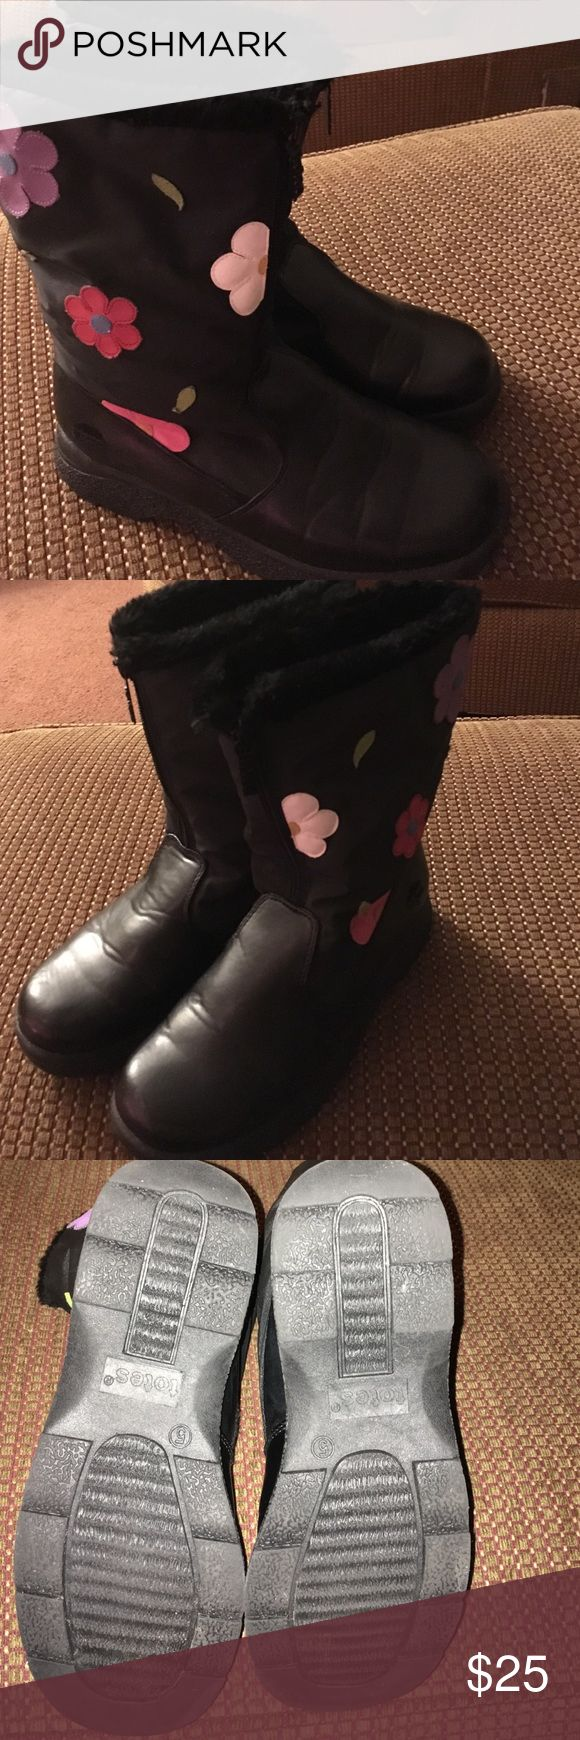 Totes winter boots gently used Black with flower design on sides fully fur lined winter/snow boots only worn a few times .  They are practically new Totes Shoes Rain & Snow Boots